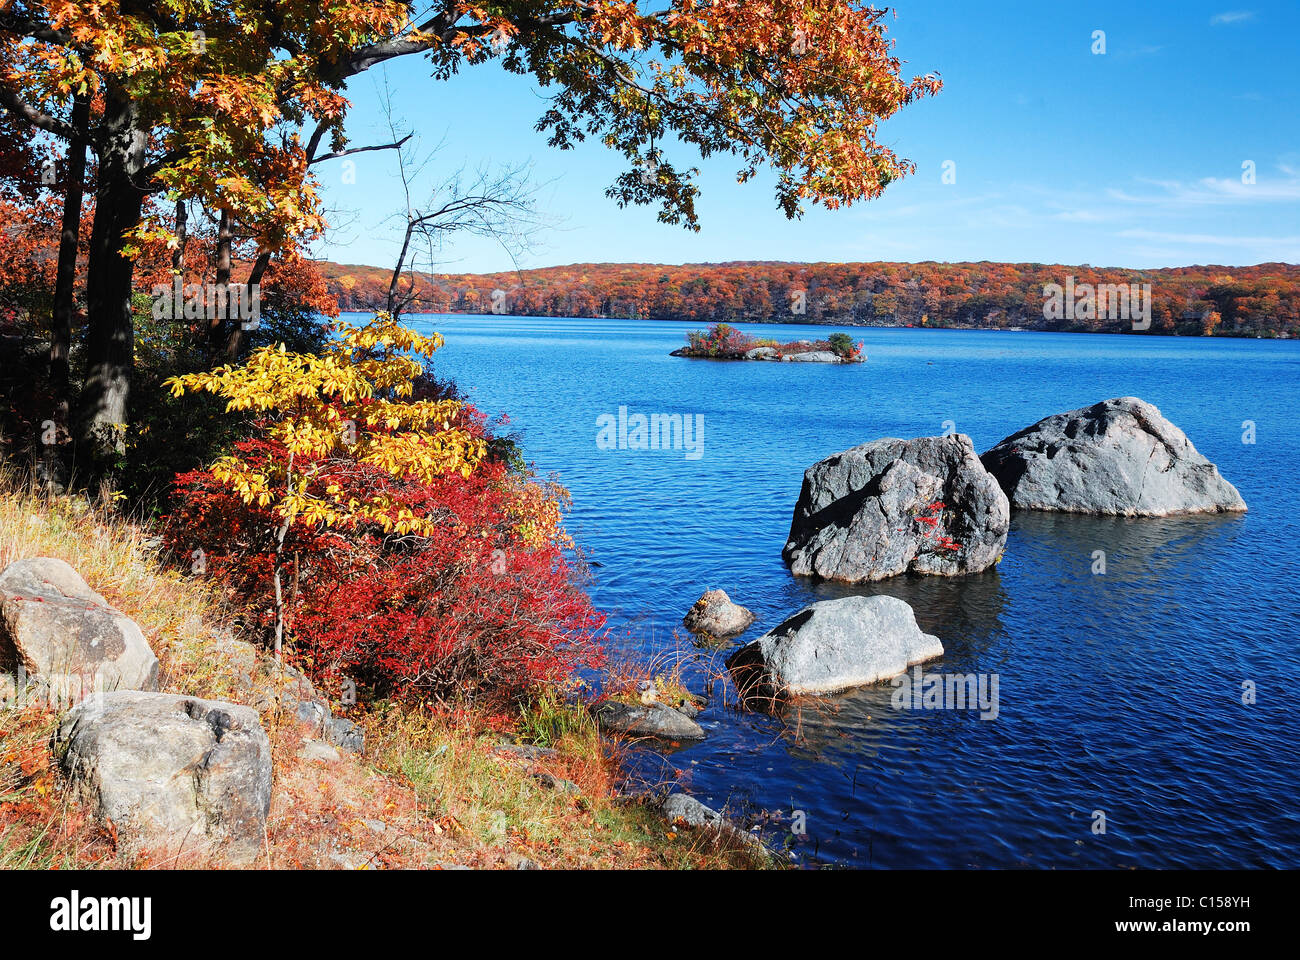 Autumn Mountain with lake view and colorful foliage in forest. - Stock Image